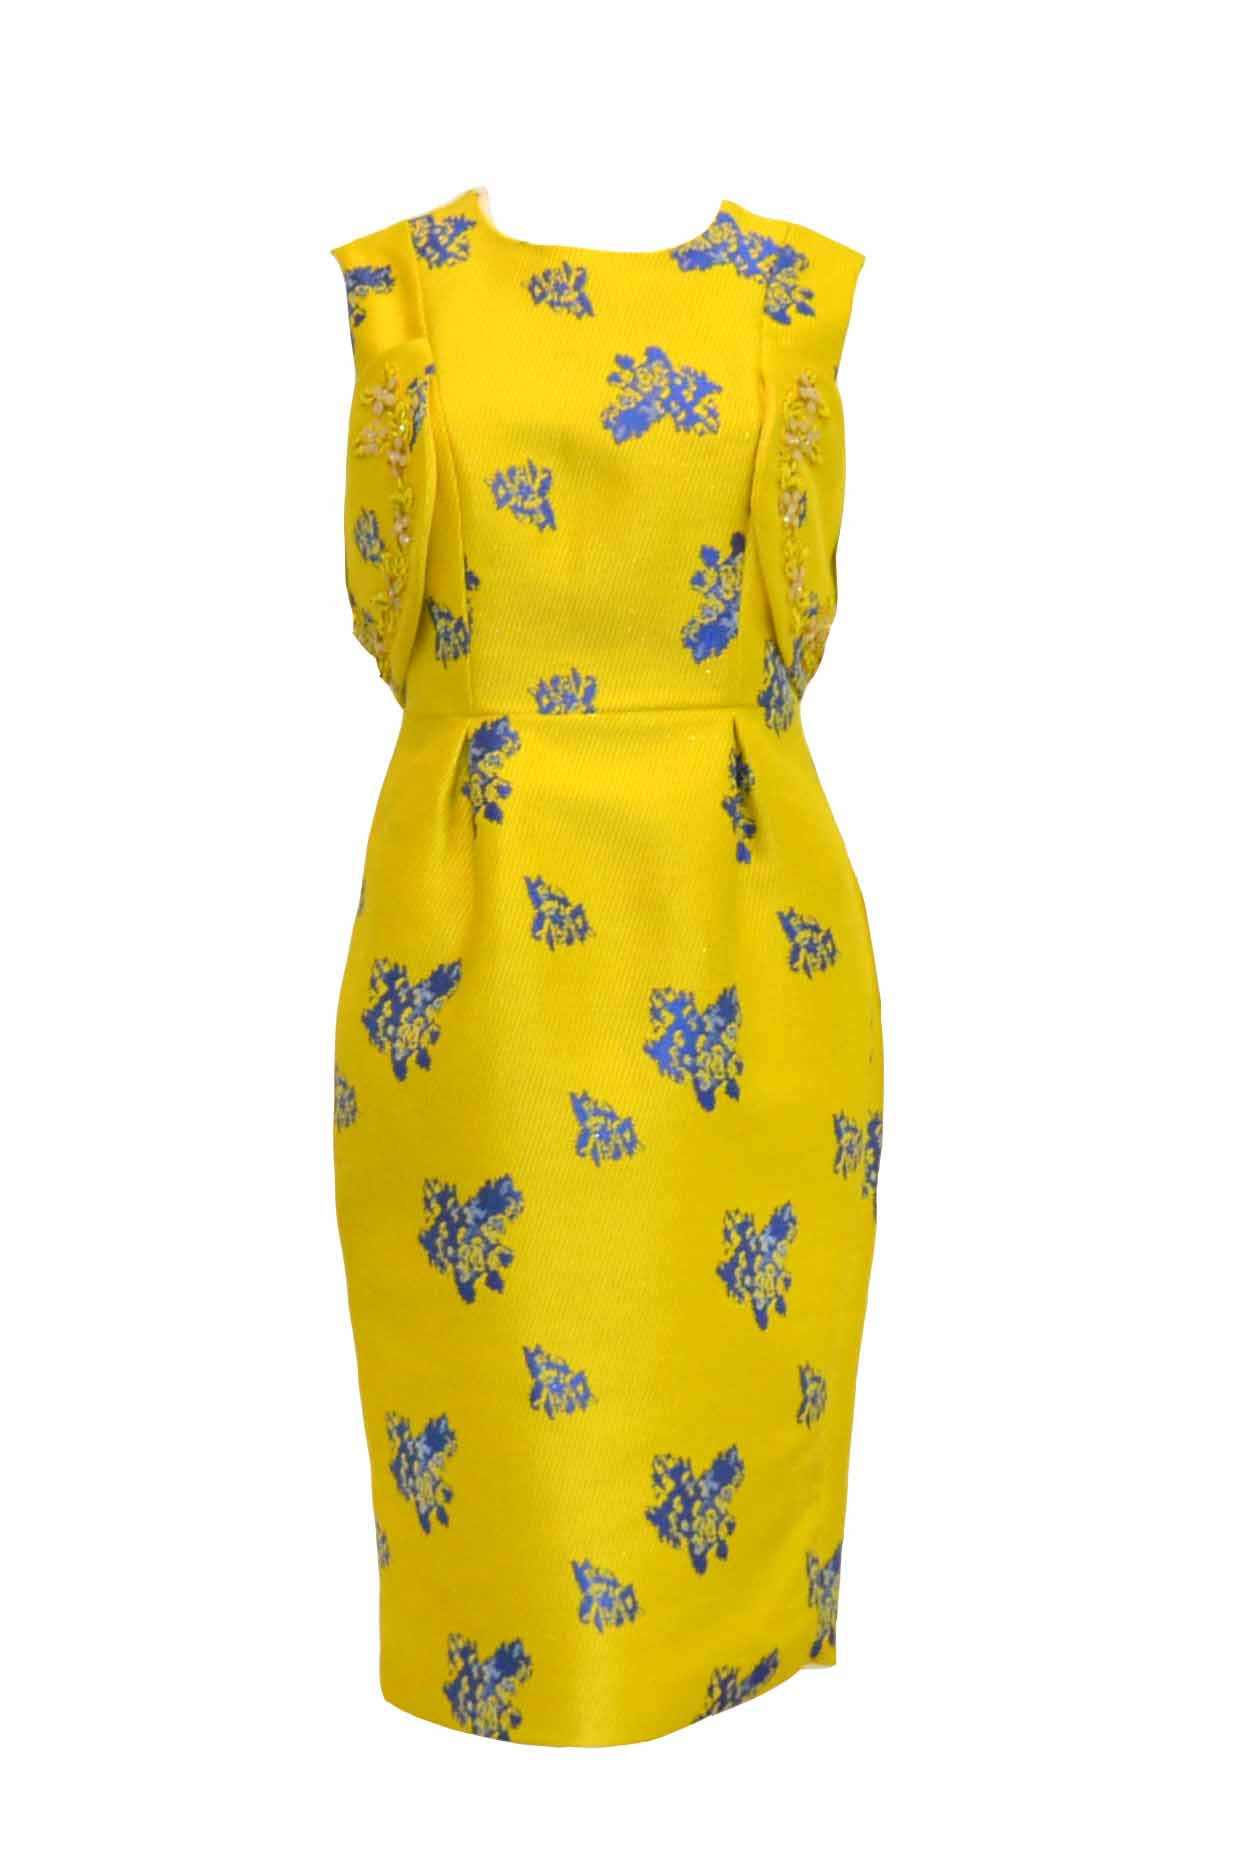 Sale: Private Label - Yellow Jacquard Sleeveless Cold Shoulder Cocktail Dress